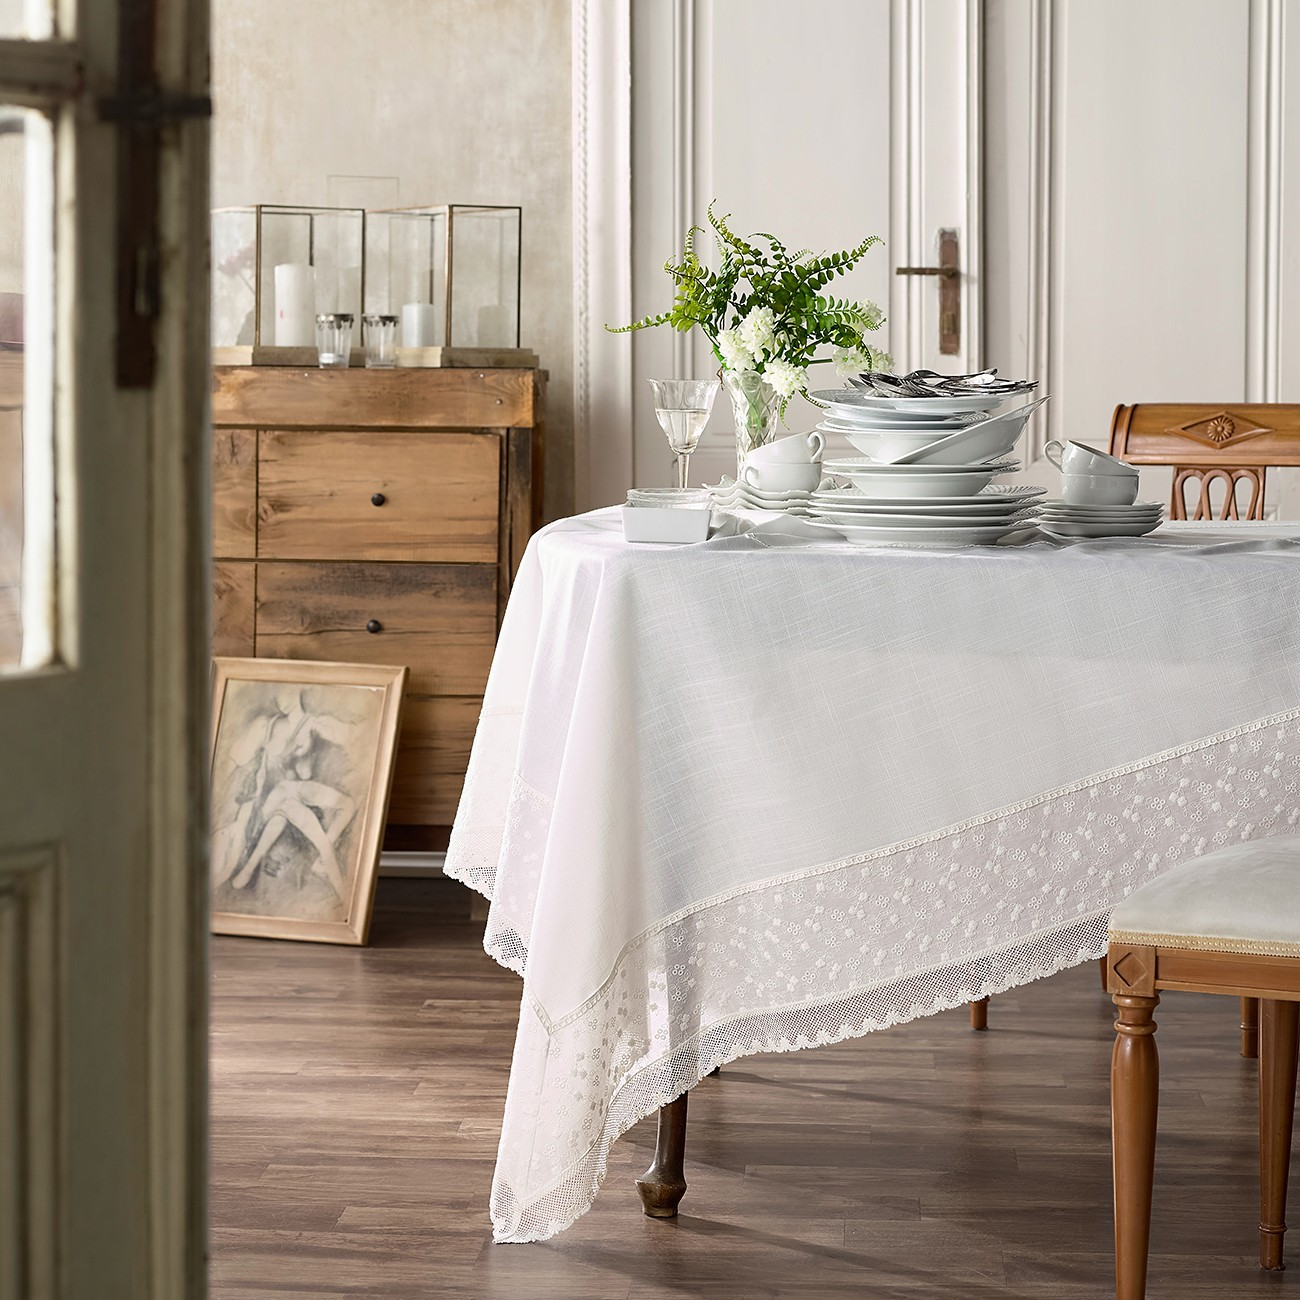 GOFIS HOME ΤΡΑΠΕΖΟΜΑΝΤΗΛΟ 326 OFF WHITE